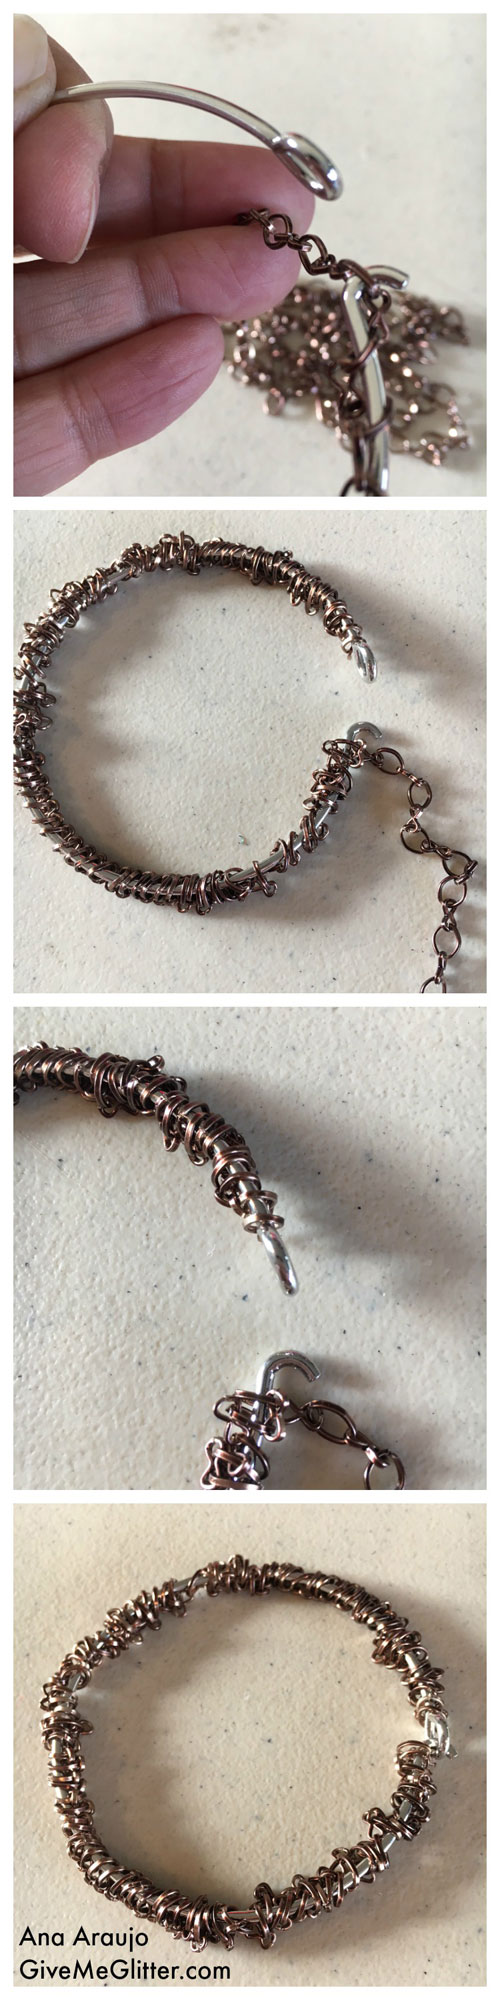 Penny Bracelet Chain Weaving